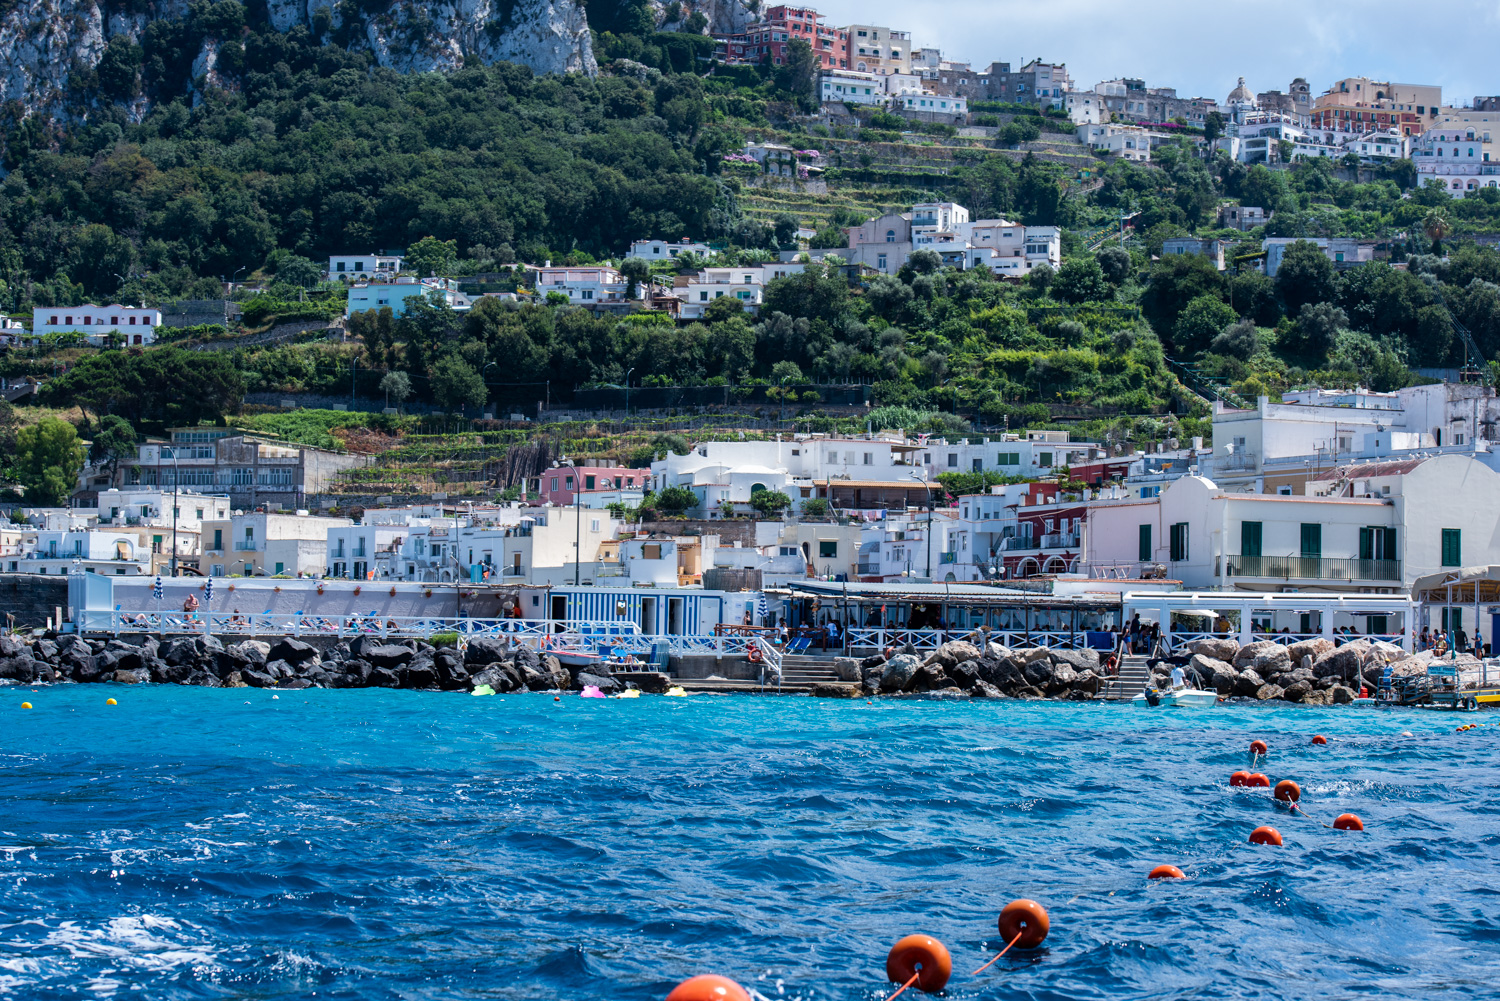 View from the water while departing the Marina Grande port in Capri, Italy.